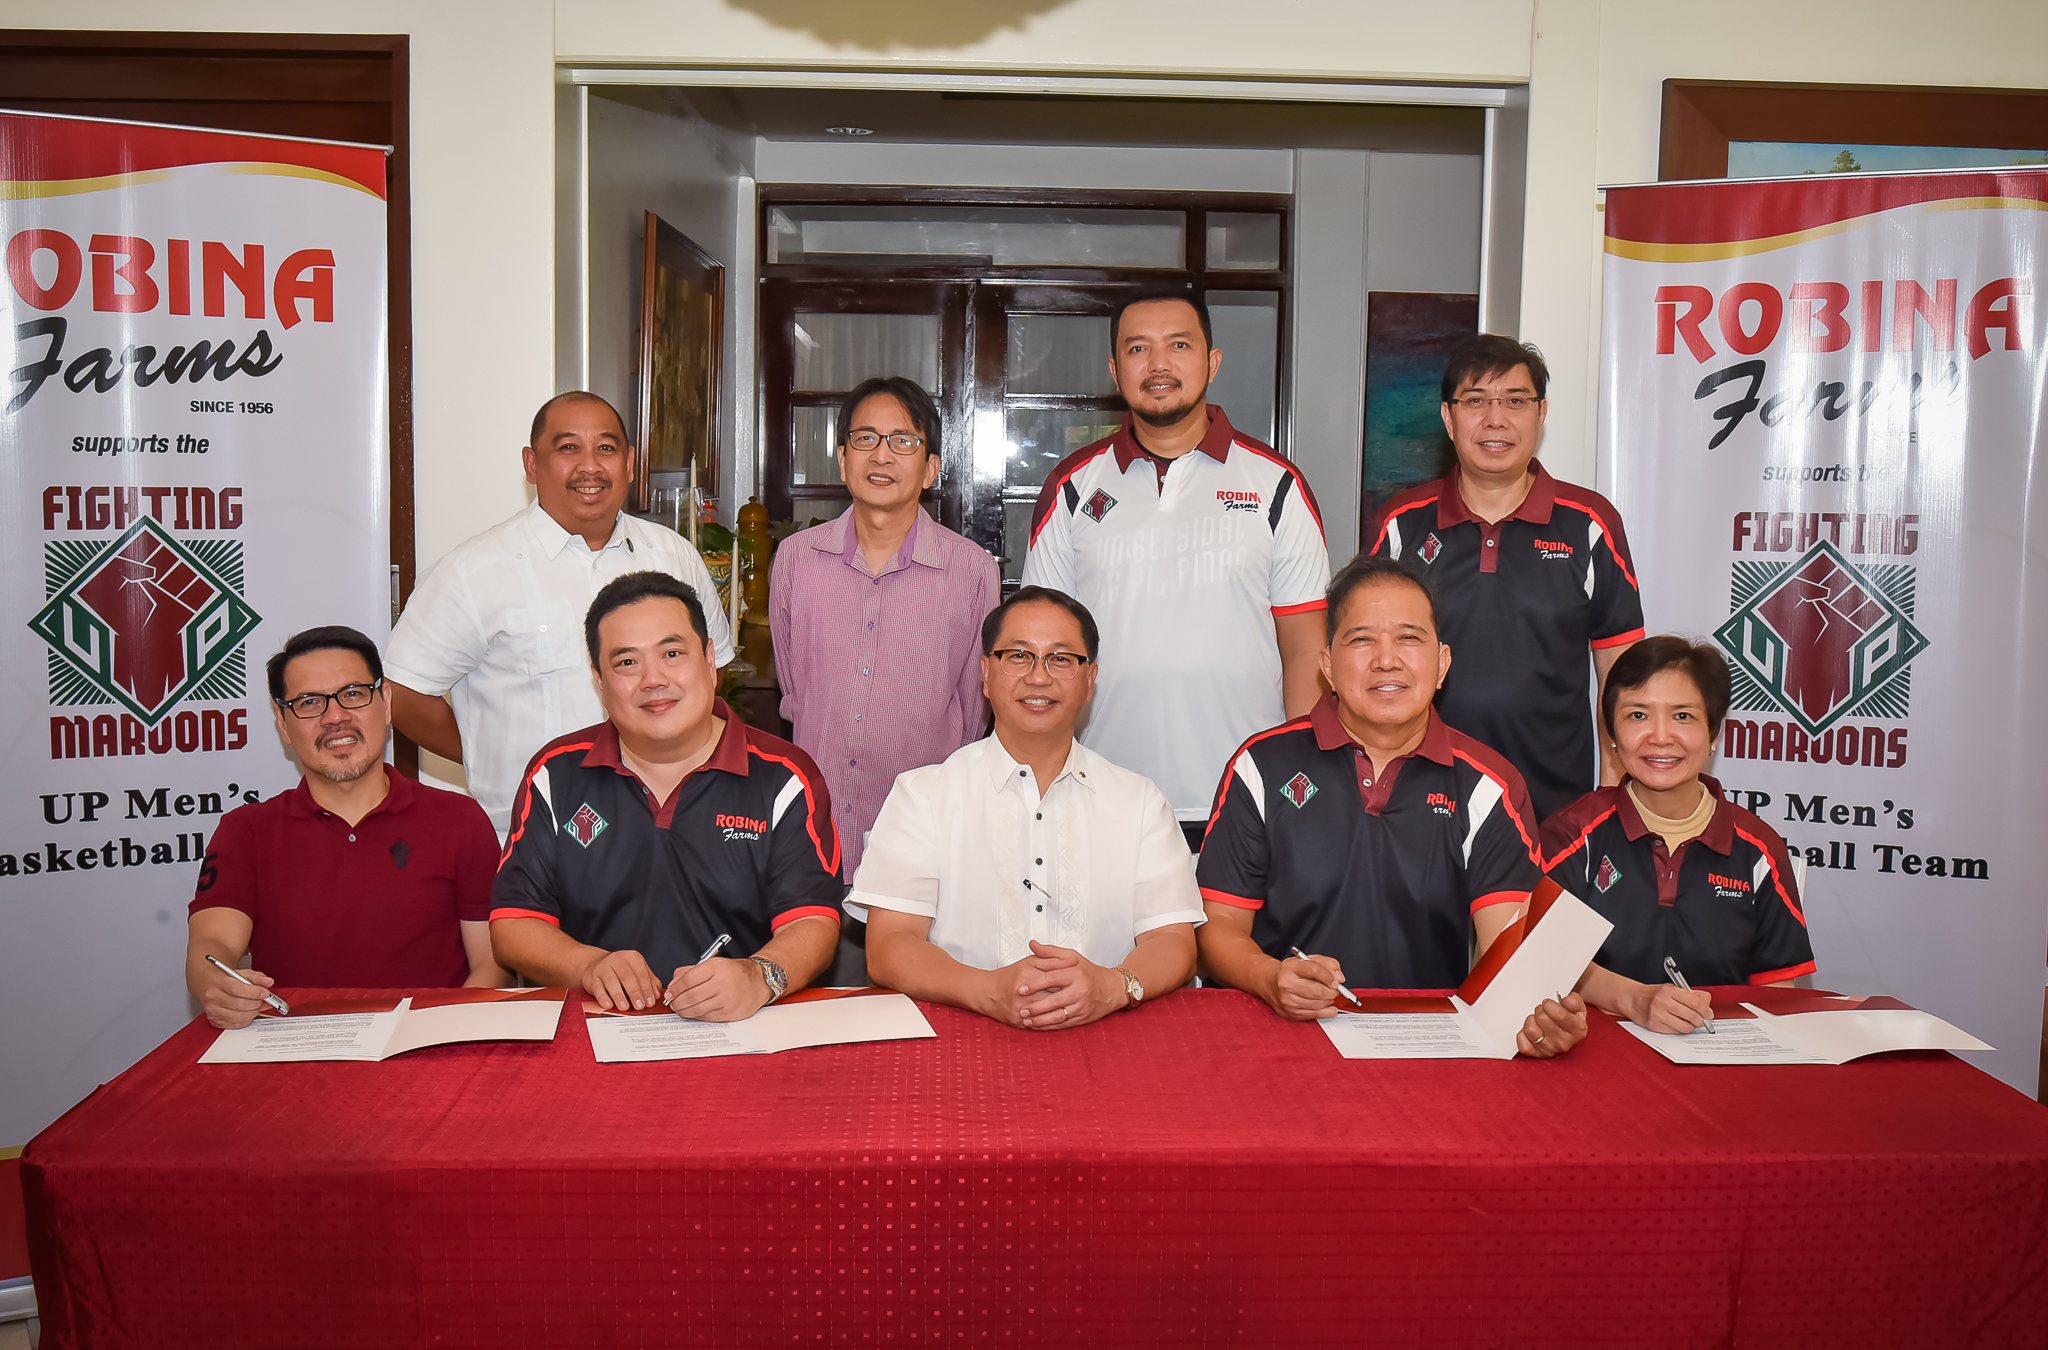 Robinsons Retail, Robina Farms continue to support UP Basketball